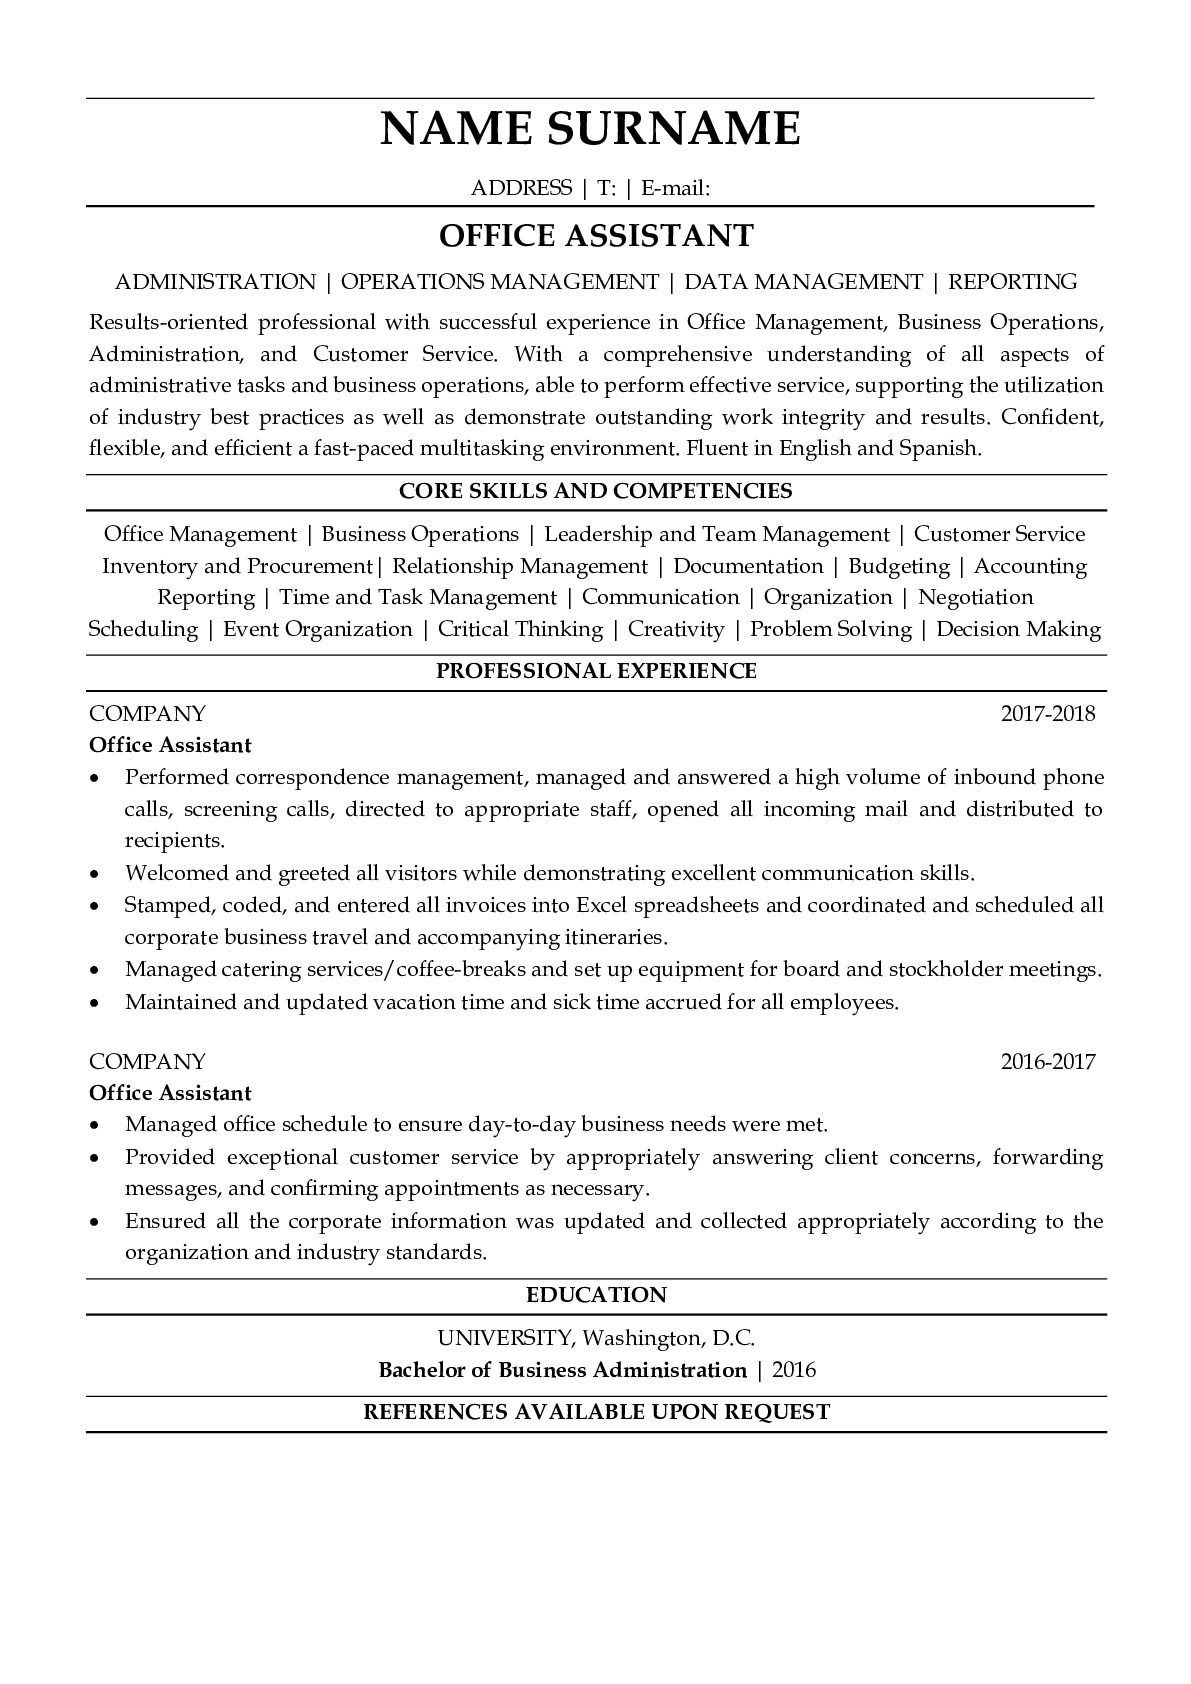 Resume for Office Assistant